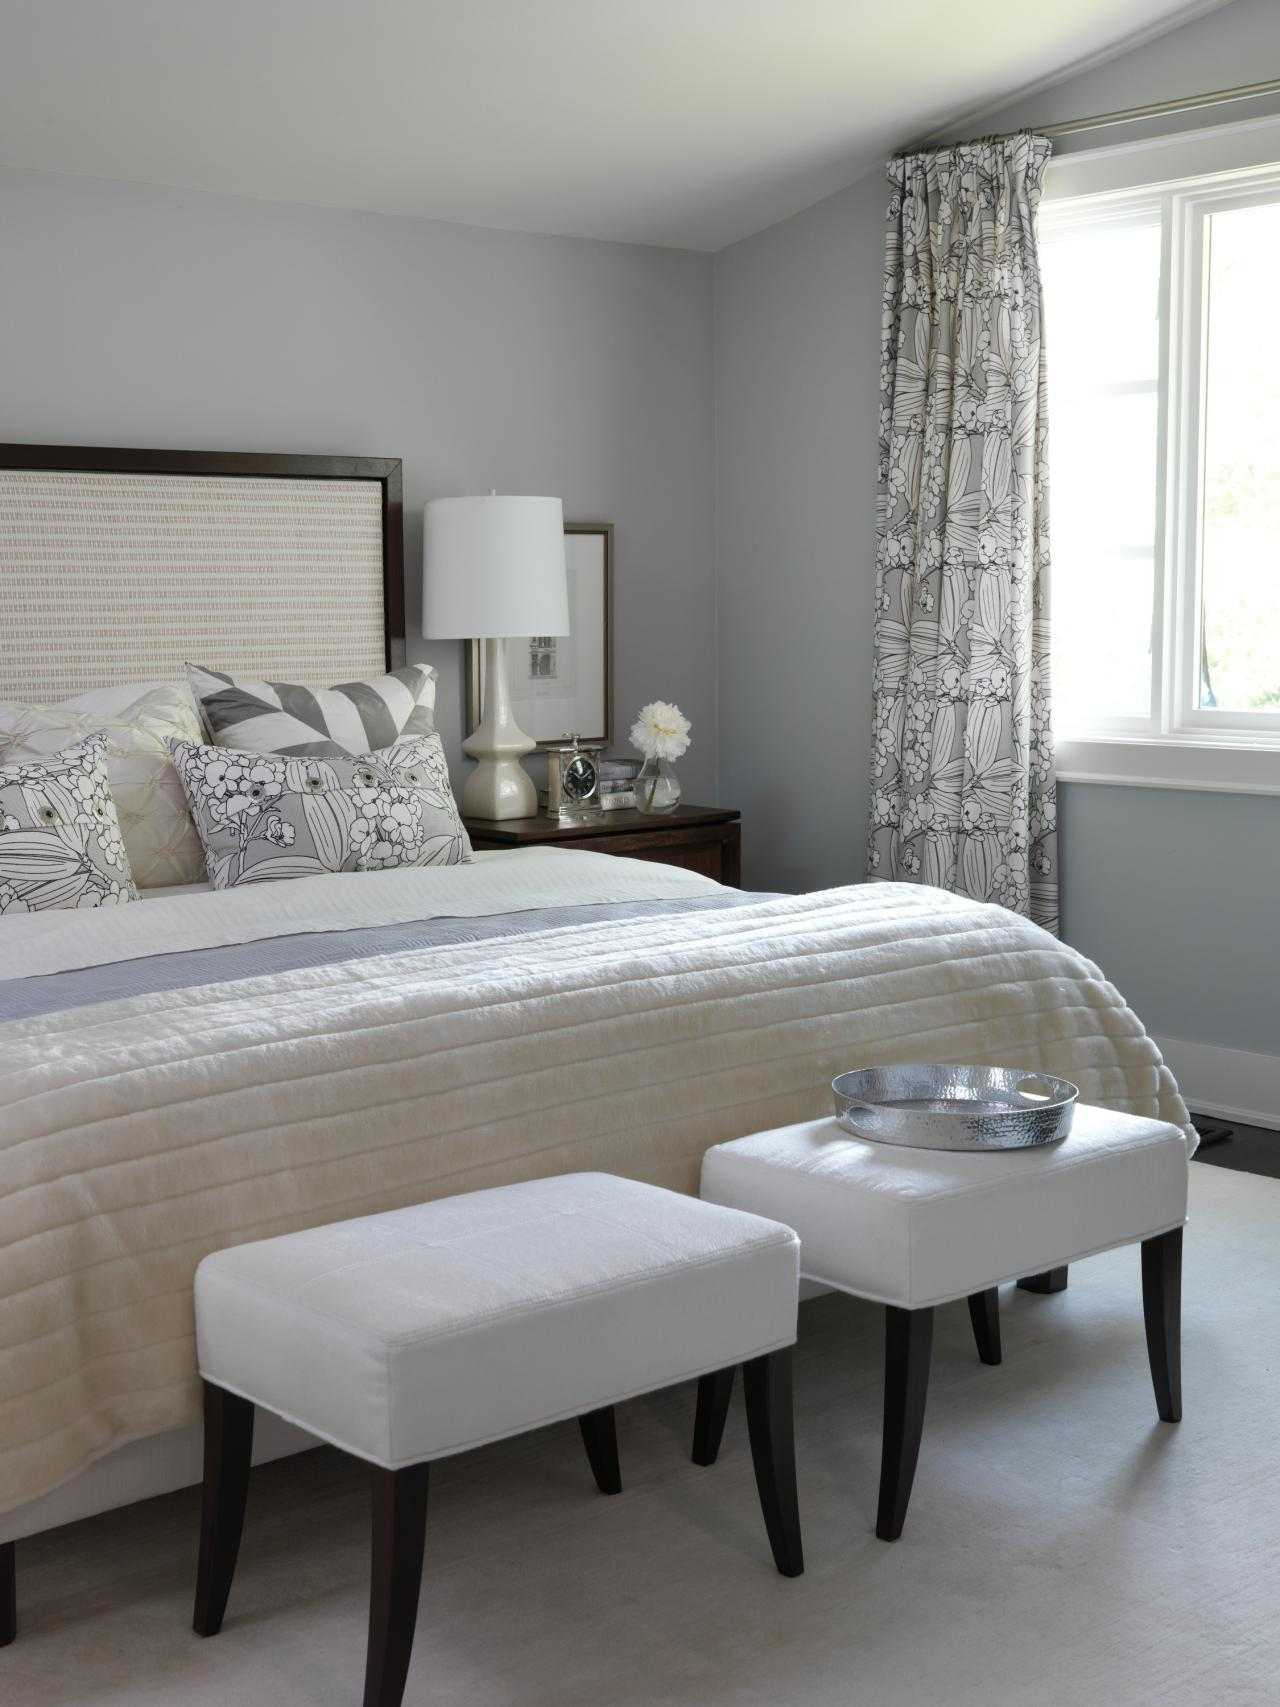 Designing The Bedroom As A Couple Hgtv 39 S Decorating Design Blog Hgtv